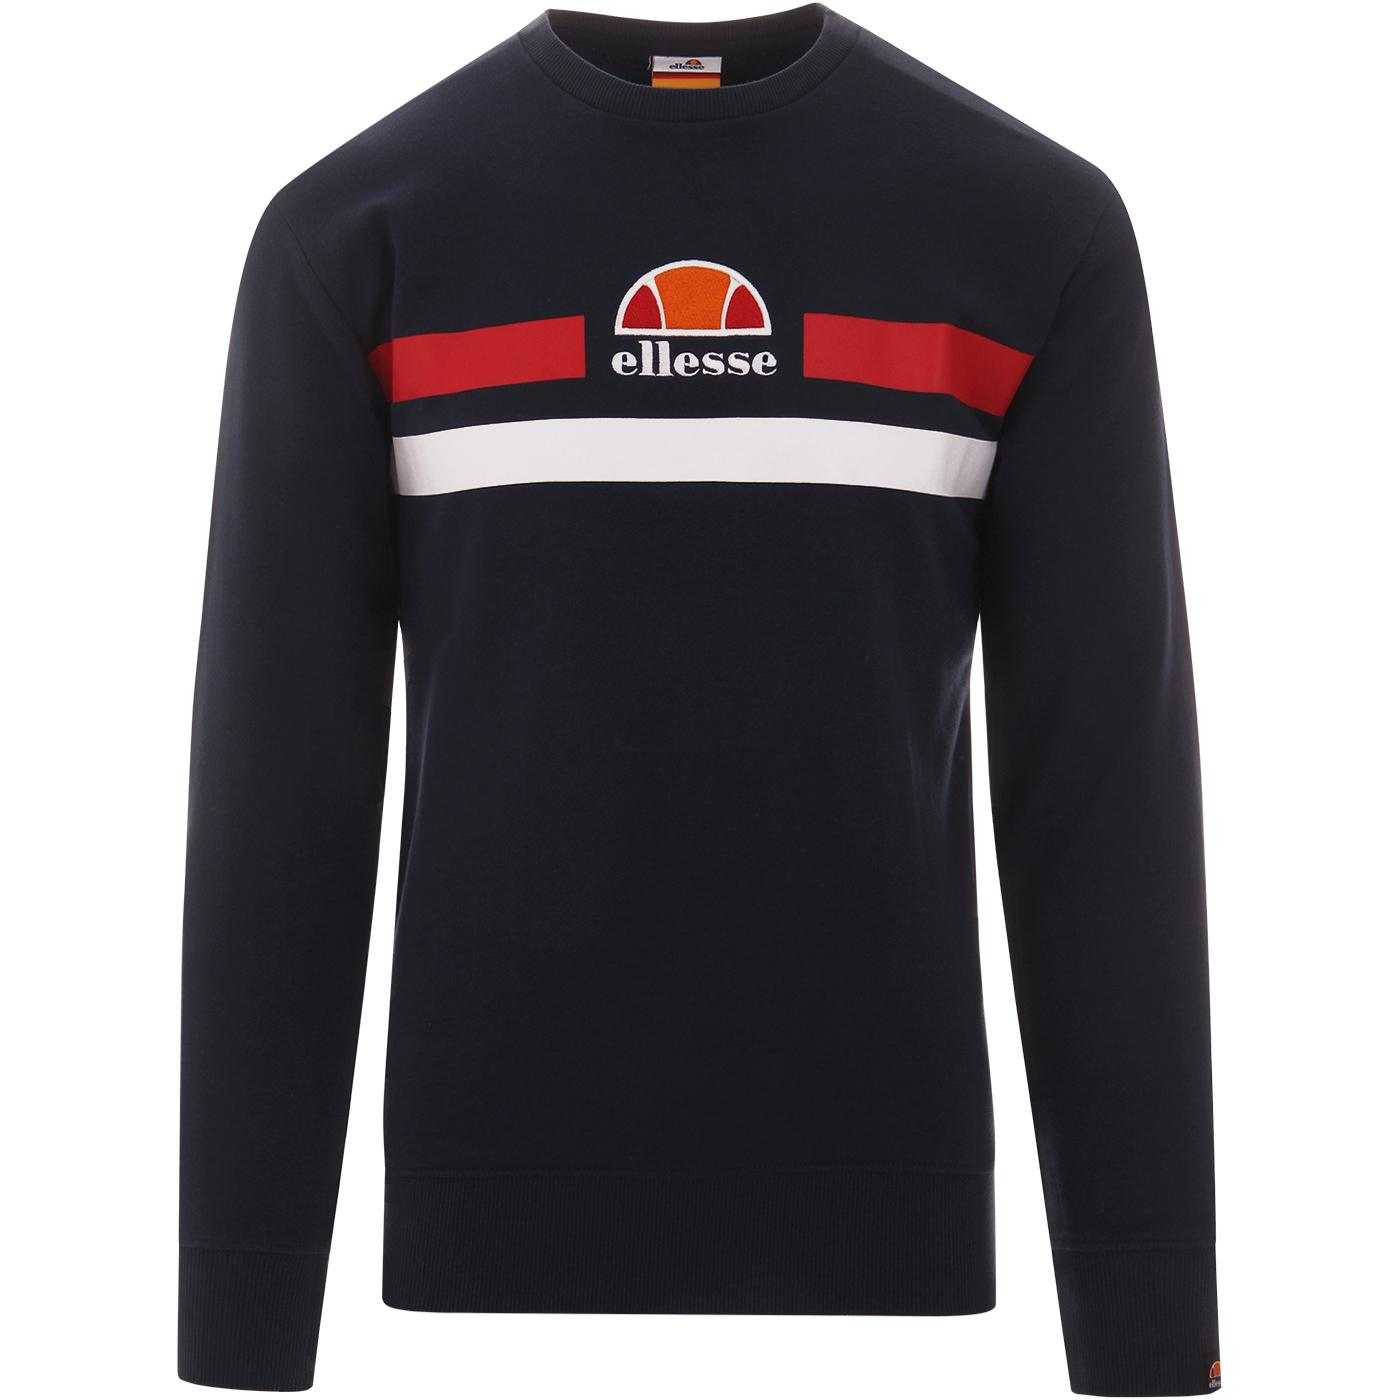 Vete ELLESSE Men's Retro Eighties Sweatshirt NAVY